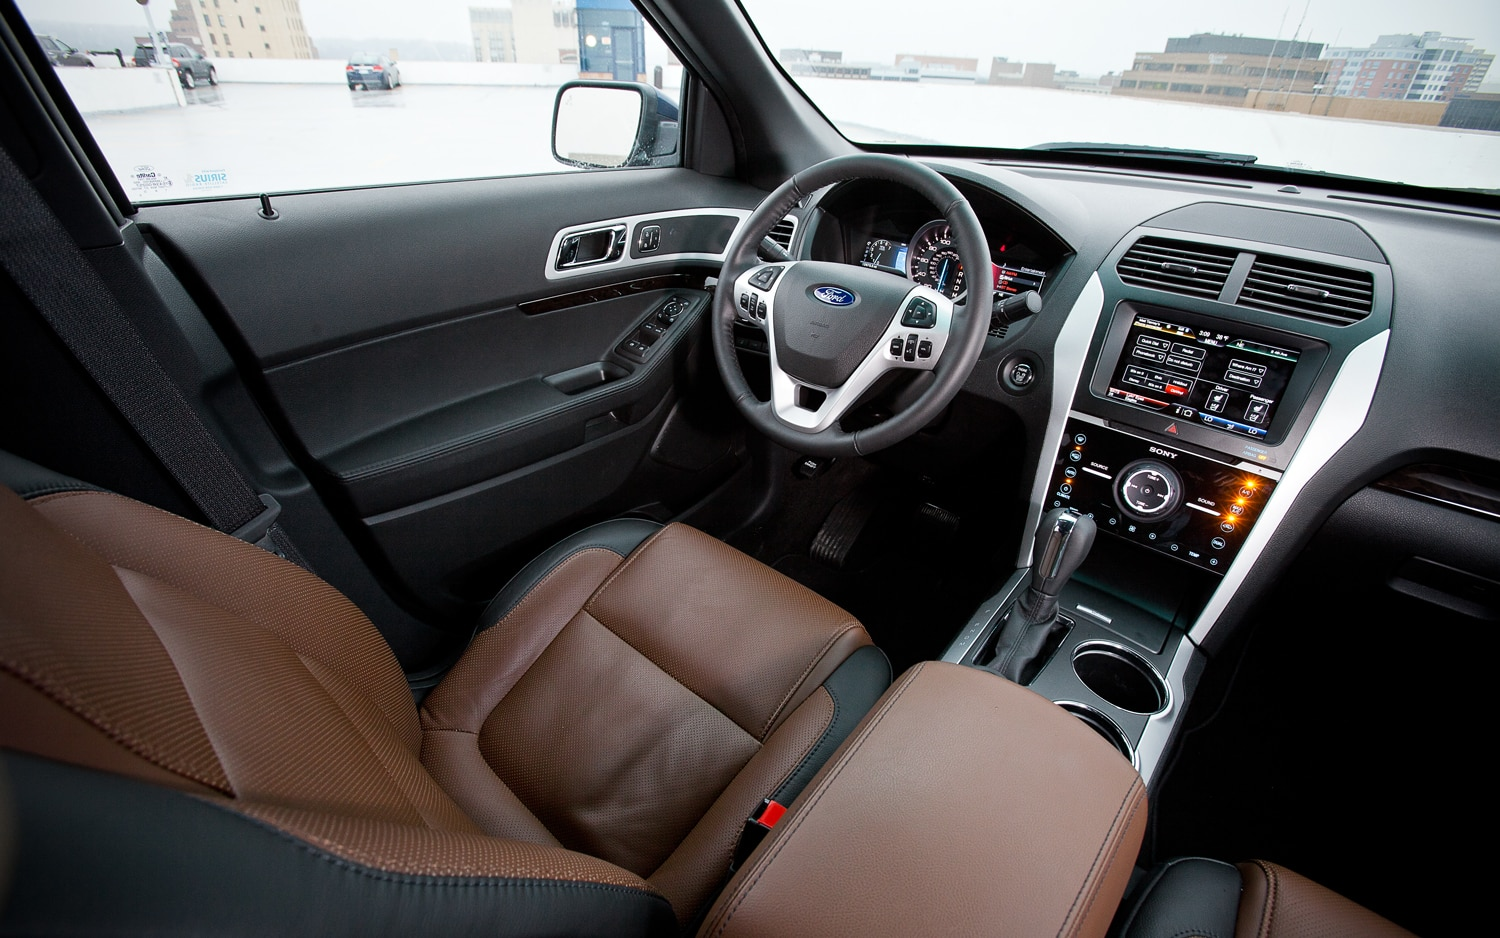 2012 ford explorer interior images galleries with a bite. Black Bedroom Furniture Sets. Home Design Ideas